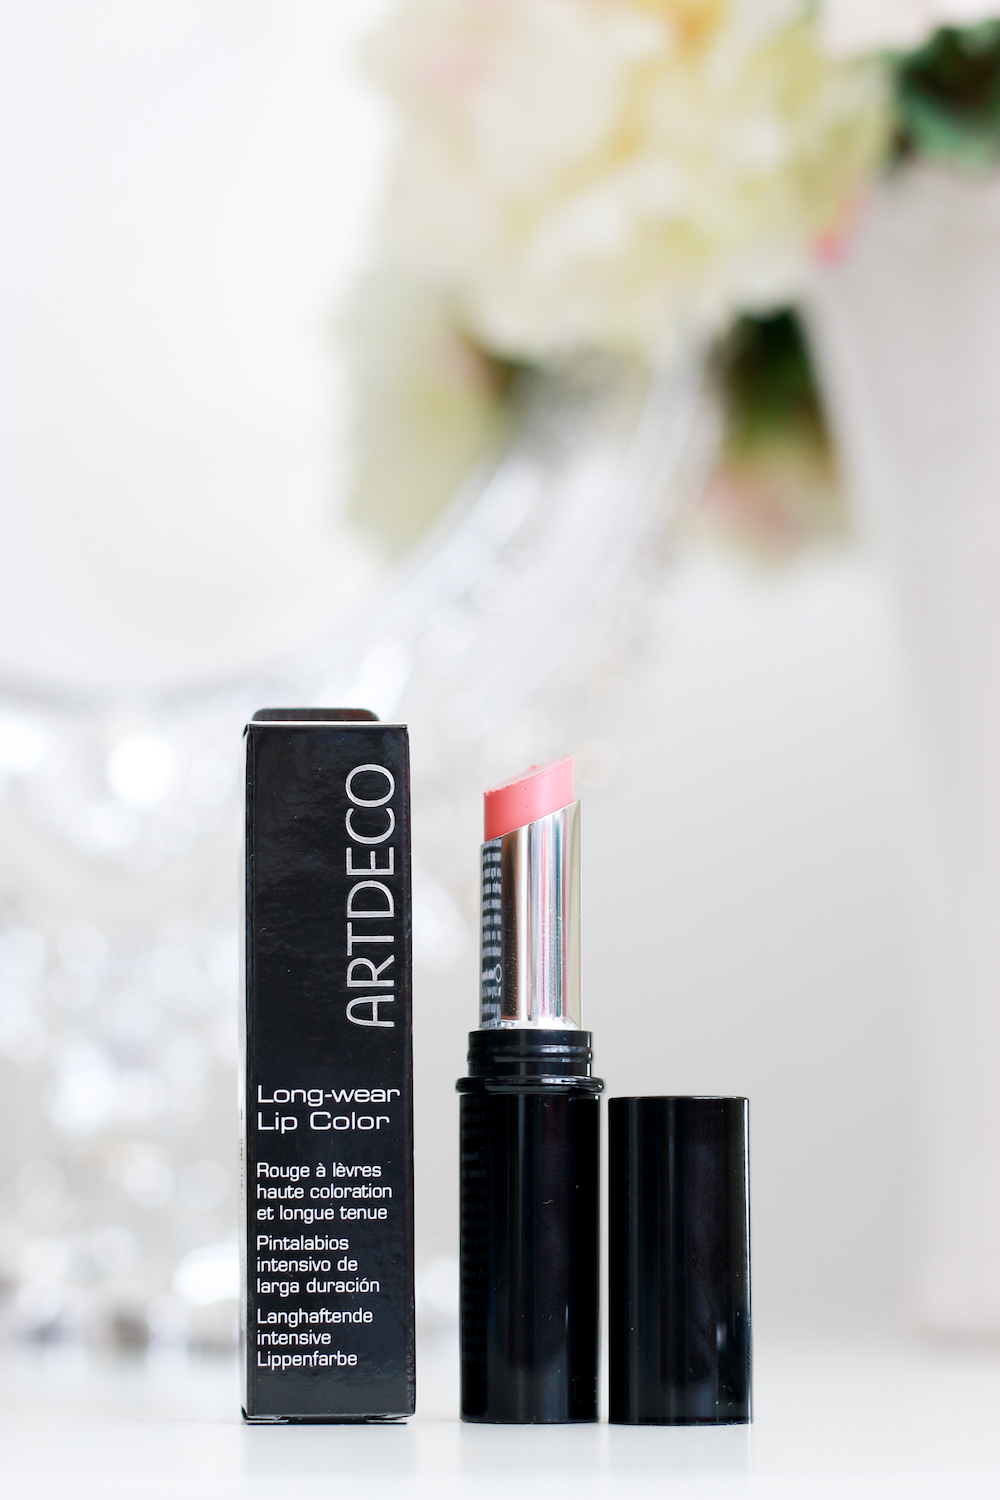 artdeco-longwear-lip-color-review-test